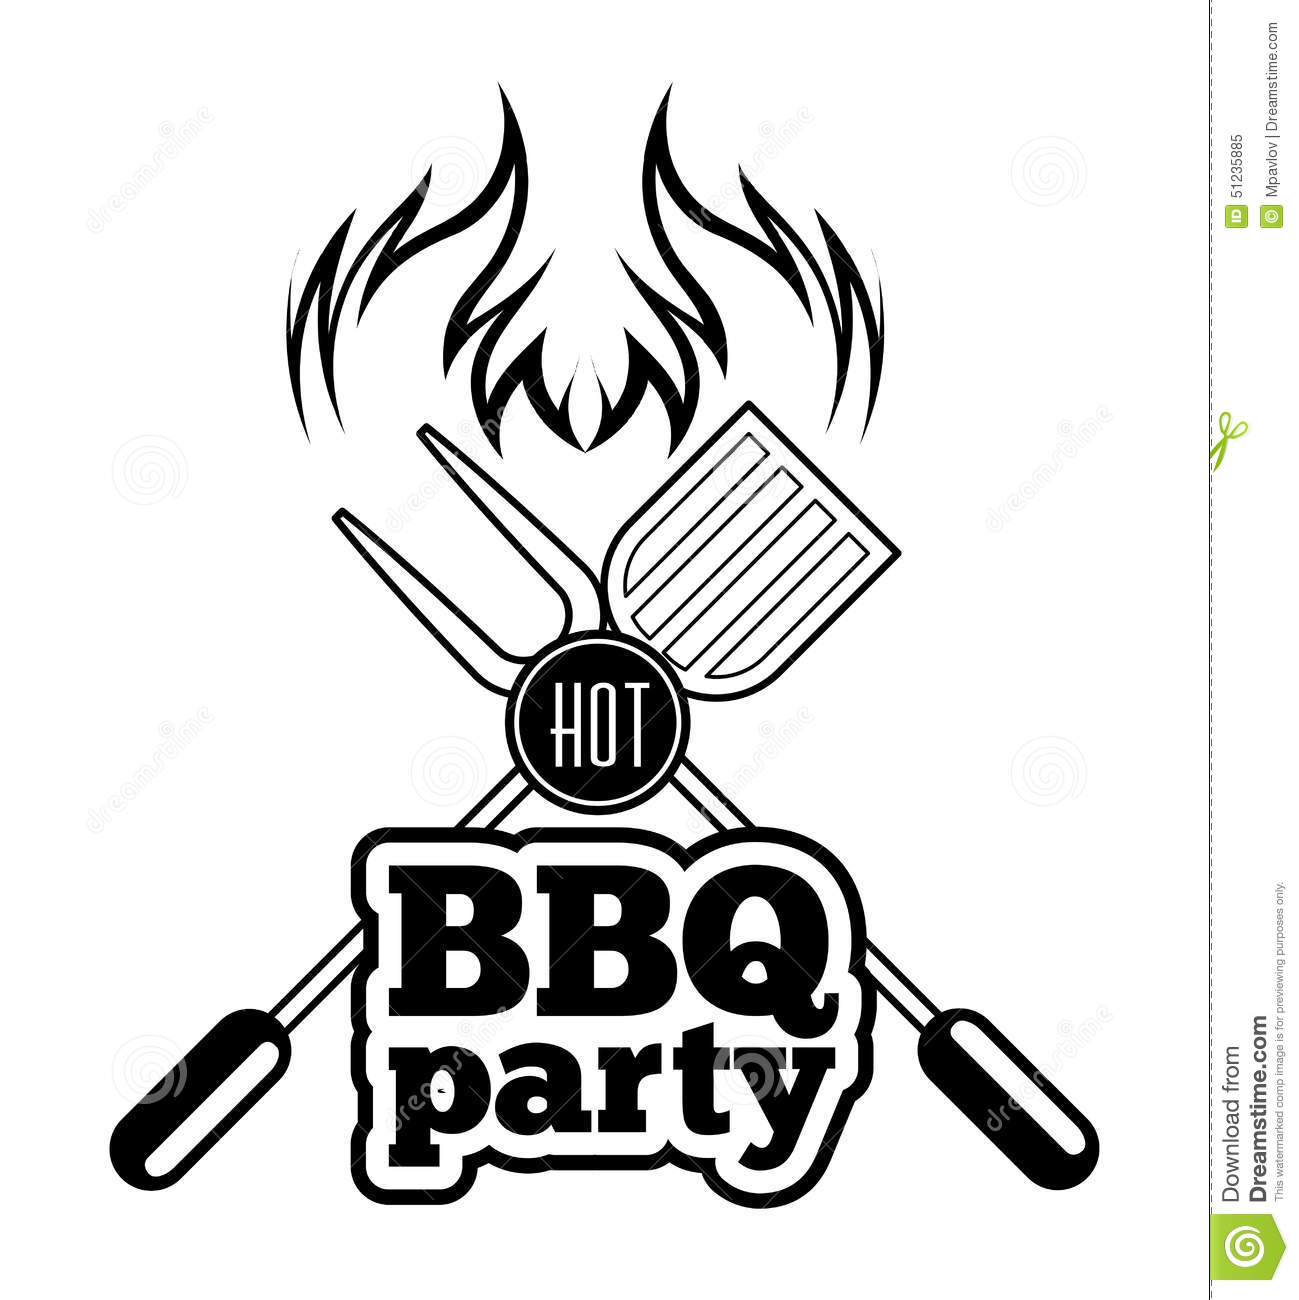 Cooked Steak Clipart also Photo together with Black And White Charcoal Bbq Grill 1169054 together with 1501 Free Clipart Of An Elephant as well Stock Abbildung Grillen Sie Grill Image51235885. on bbq grill clip art